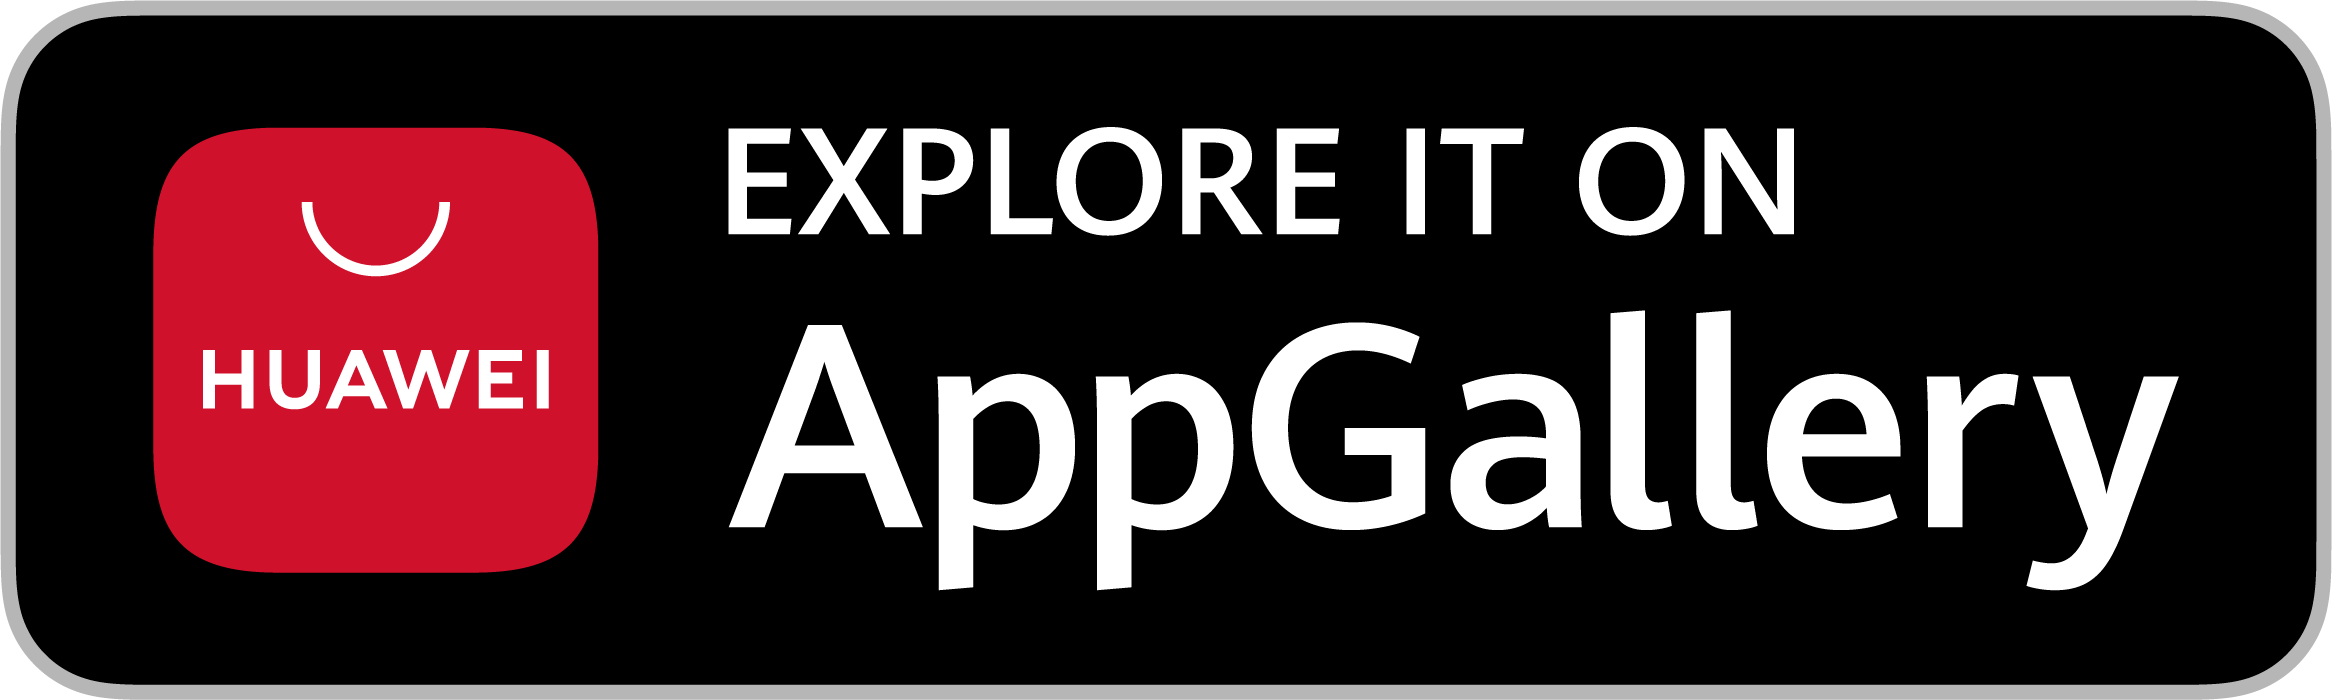 HUAWEI-Explore it on AppGallery